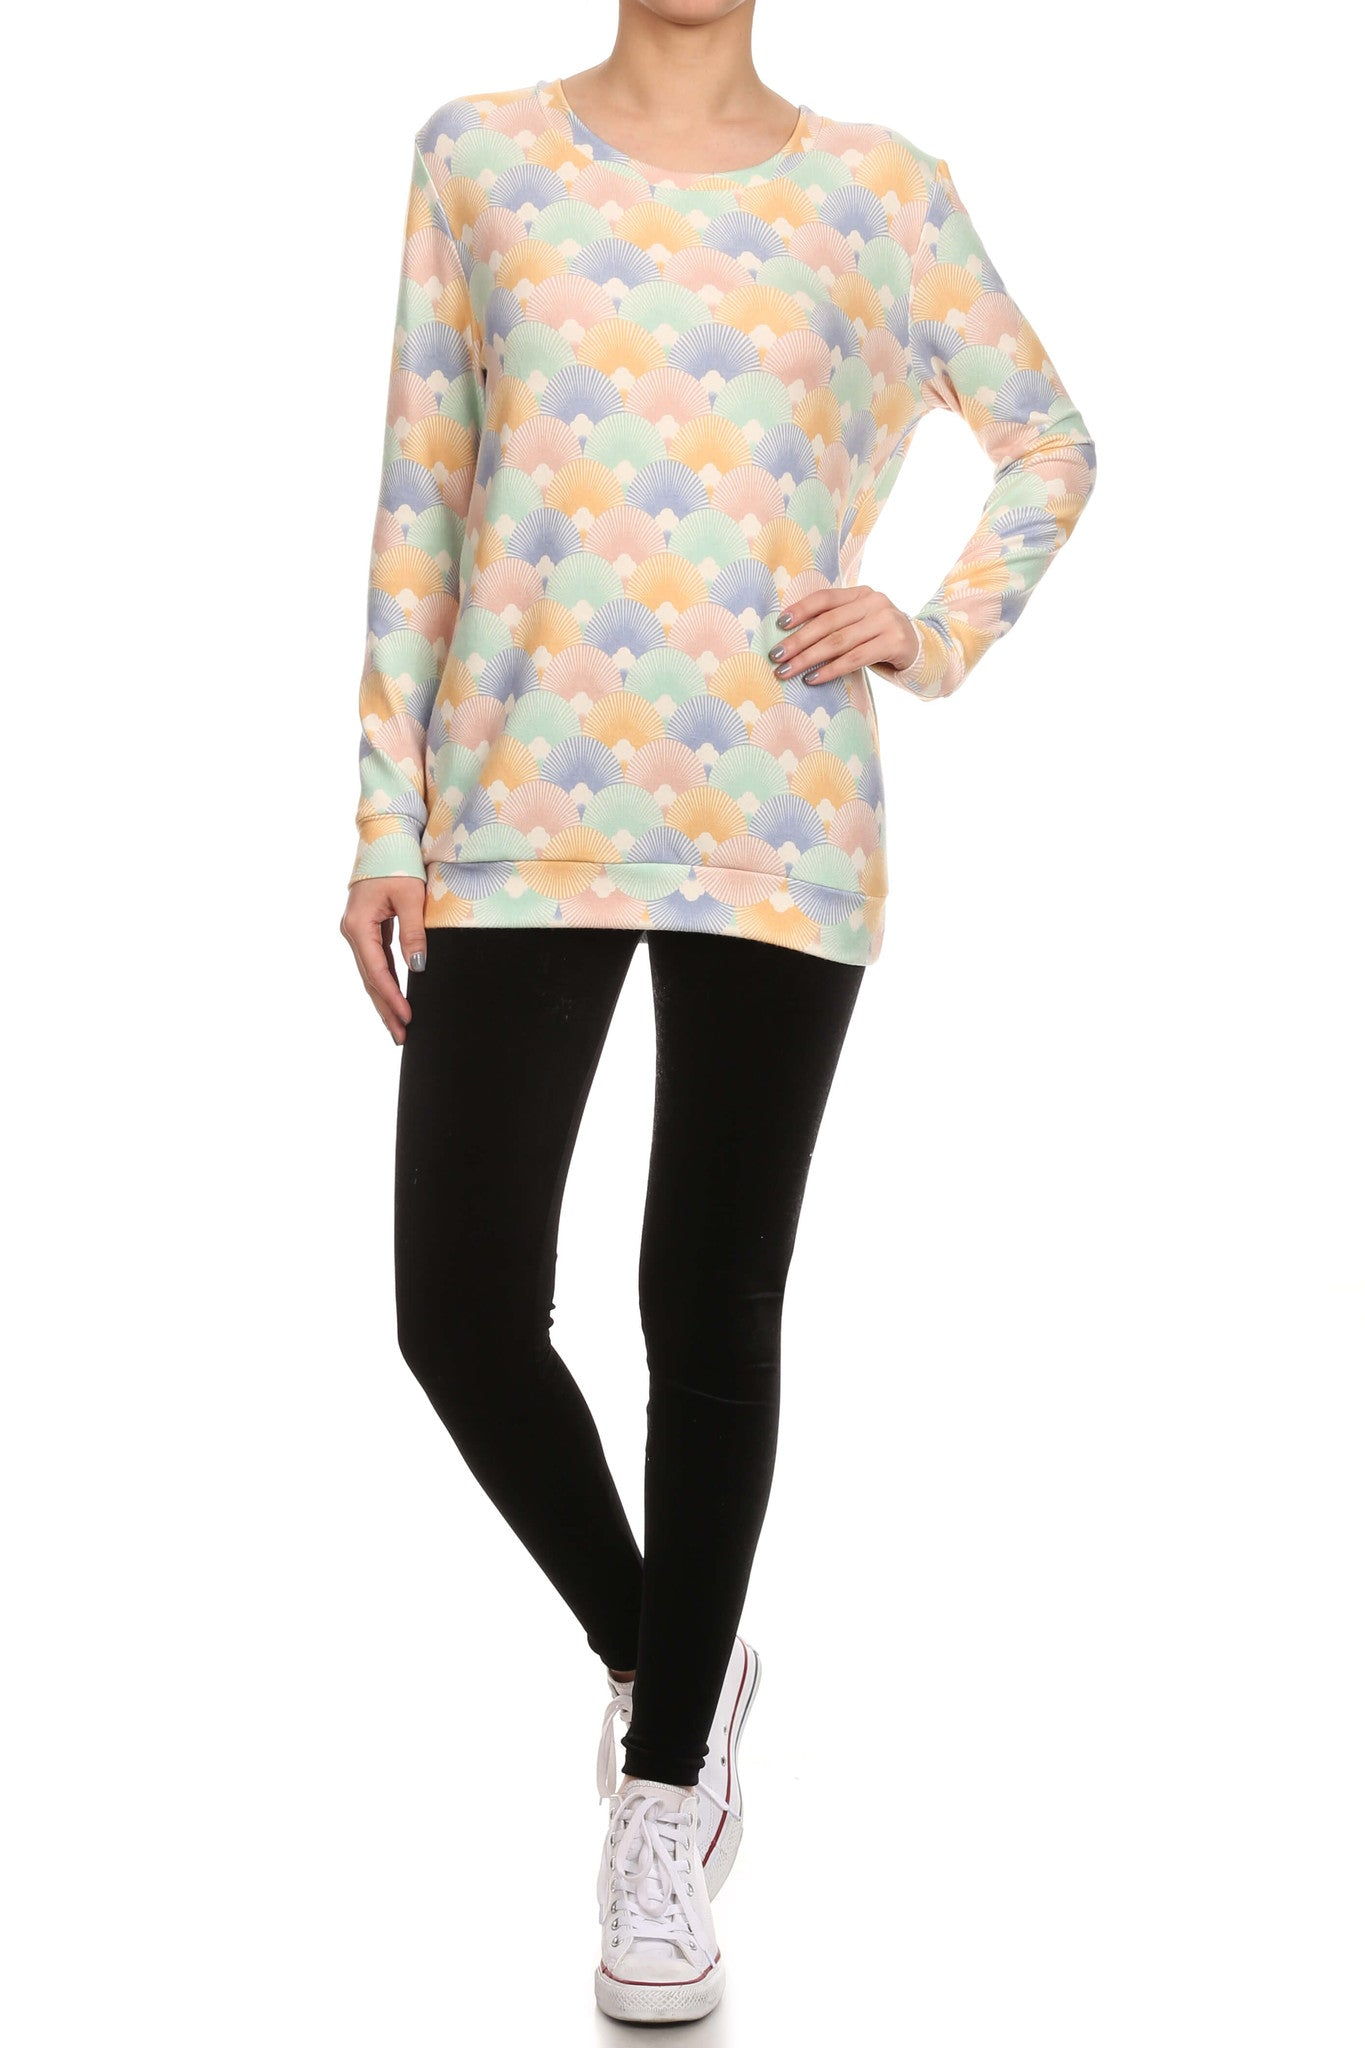 70's Fan Sweater - POPRAGEOUS  - 4